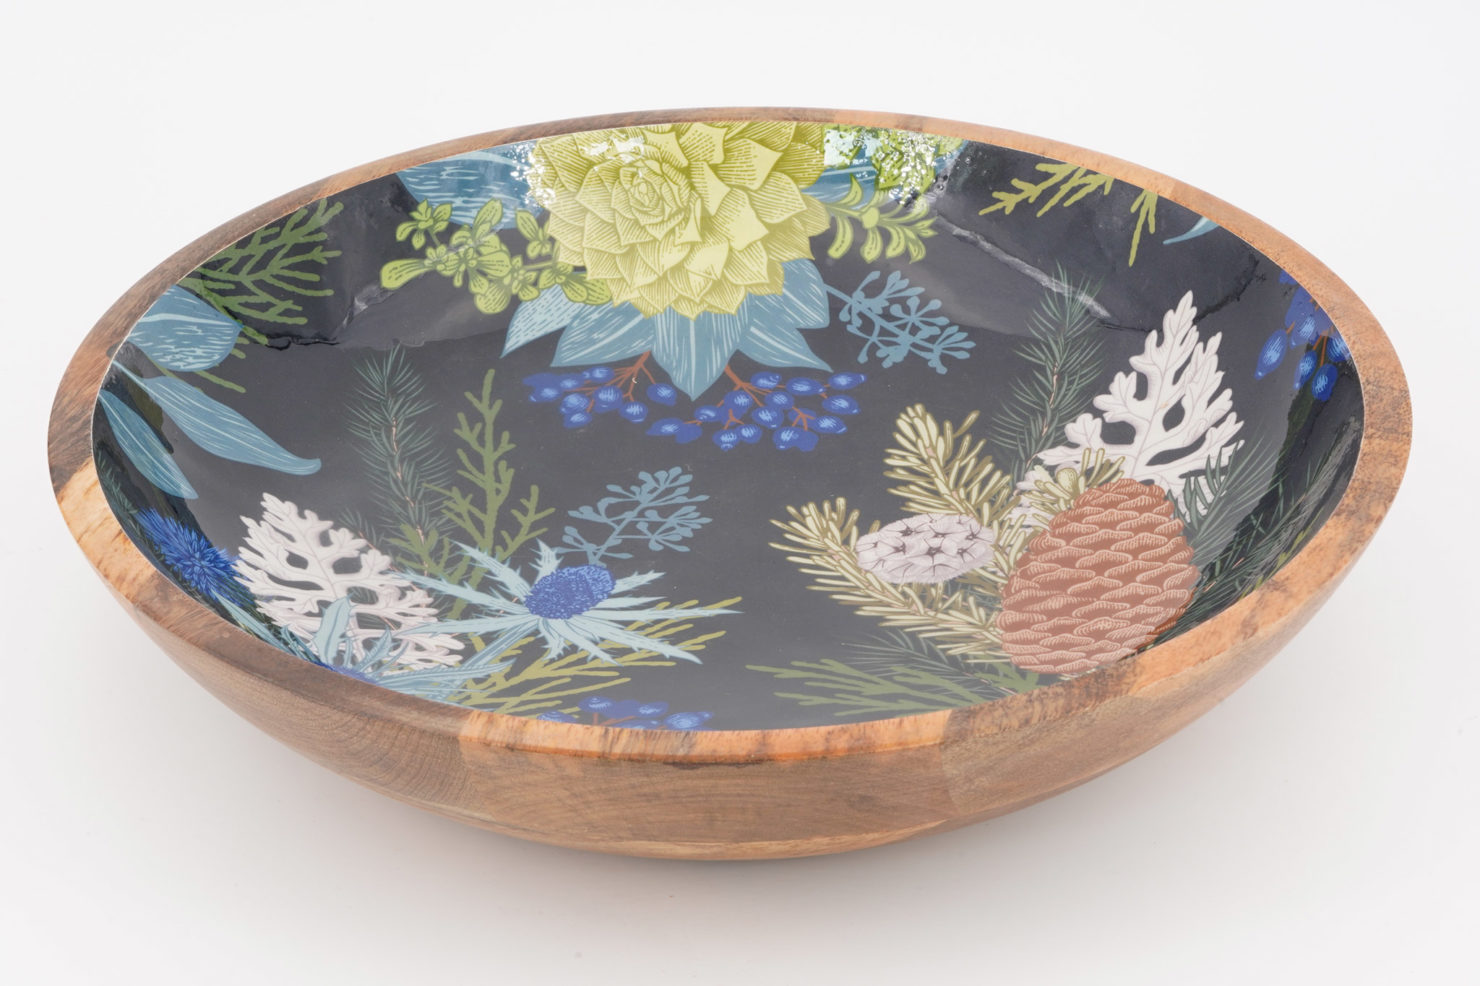 BOWL BLUE CHRISTMAS MANGO WOOD 38 CM - BY ROOM